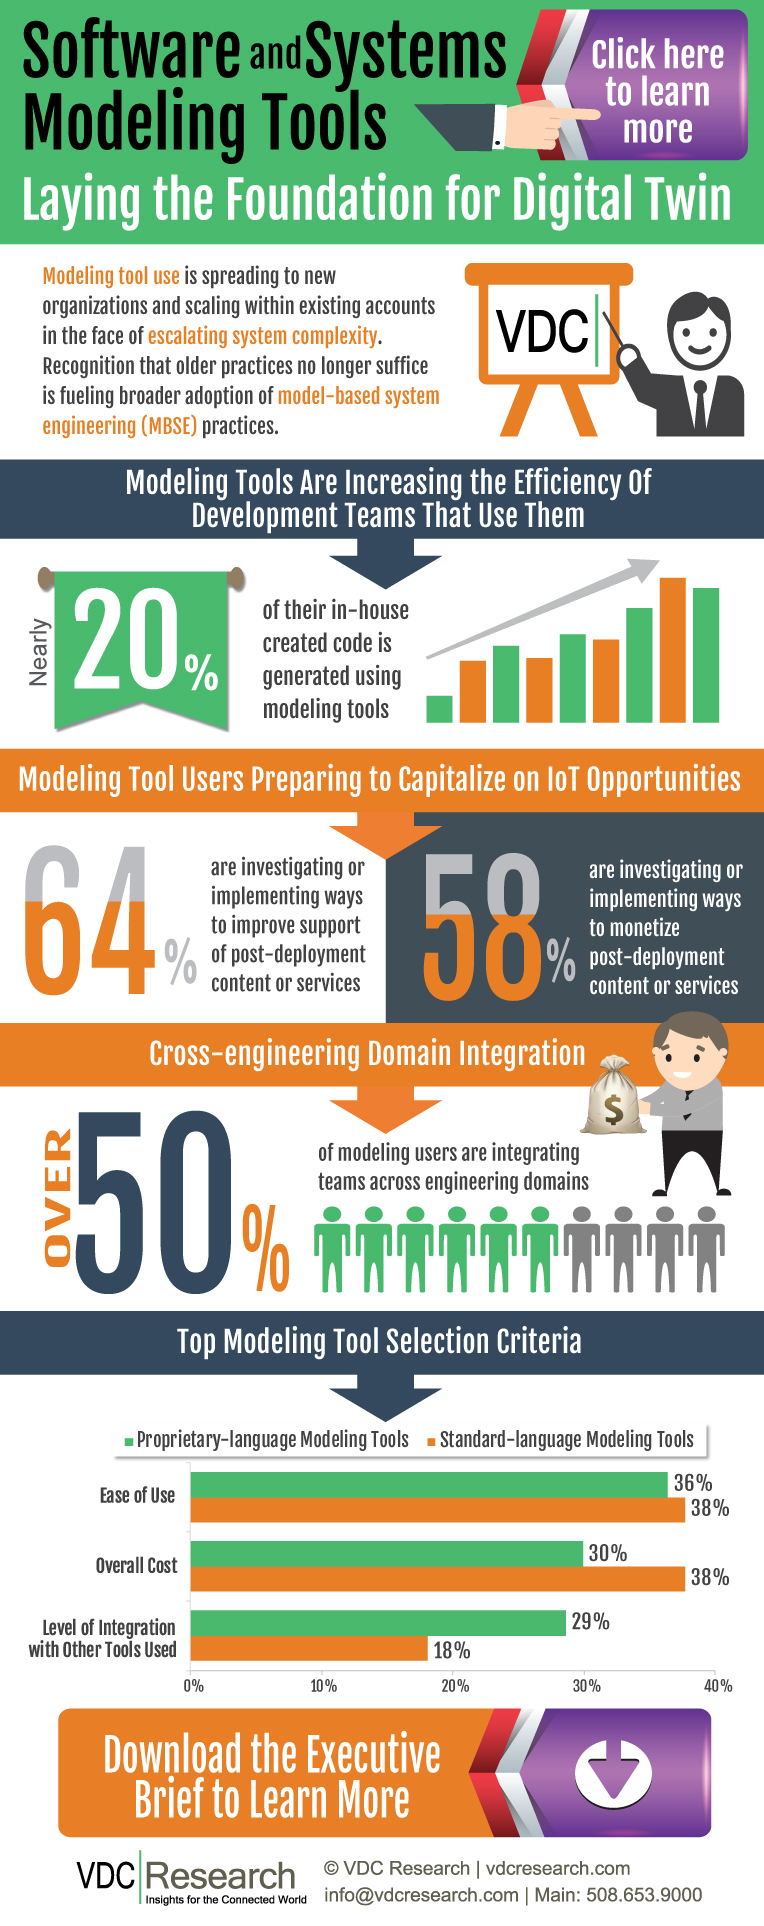 2017 Software & Systems Modeling Tools Infographic